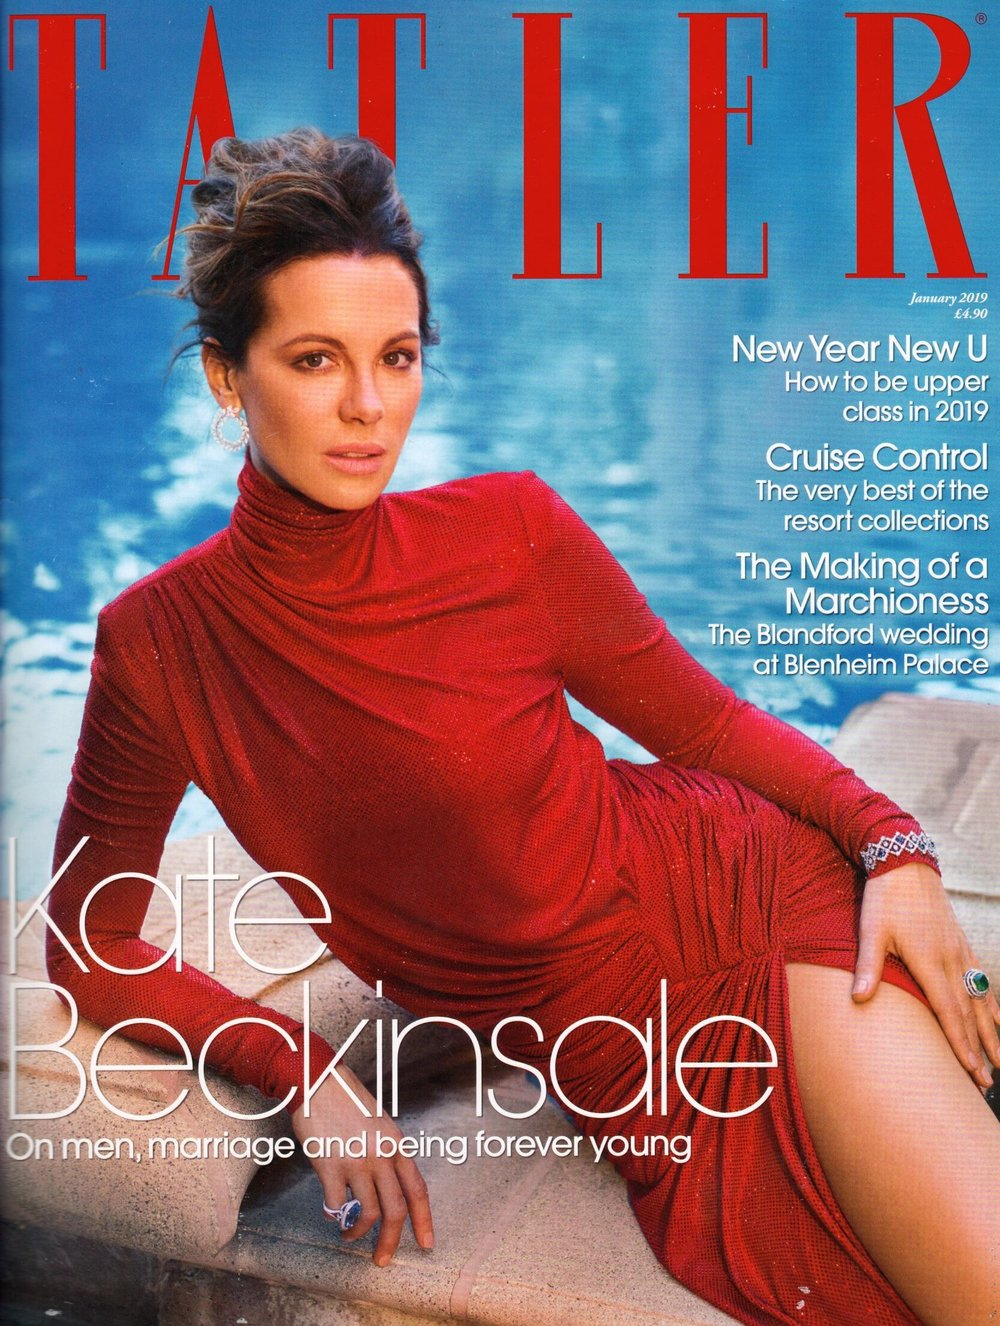 Tatler Jan 19 cover.jpg